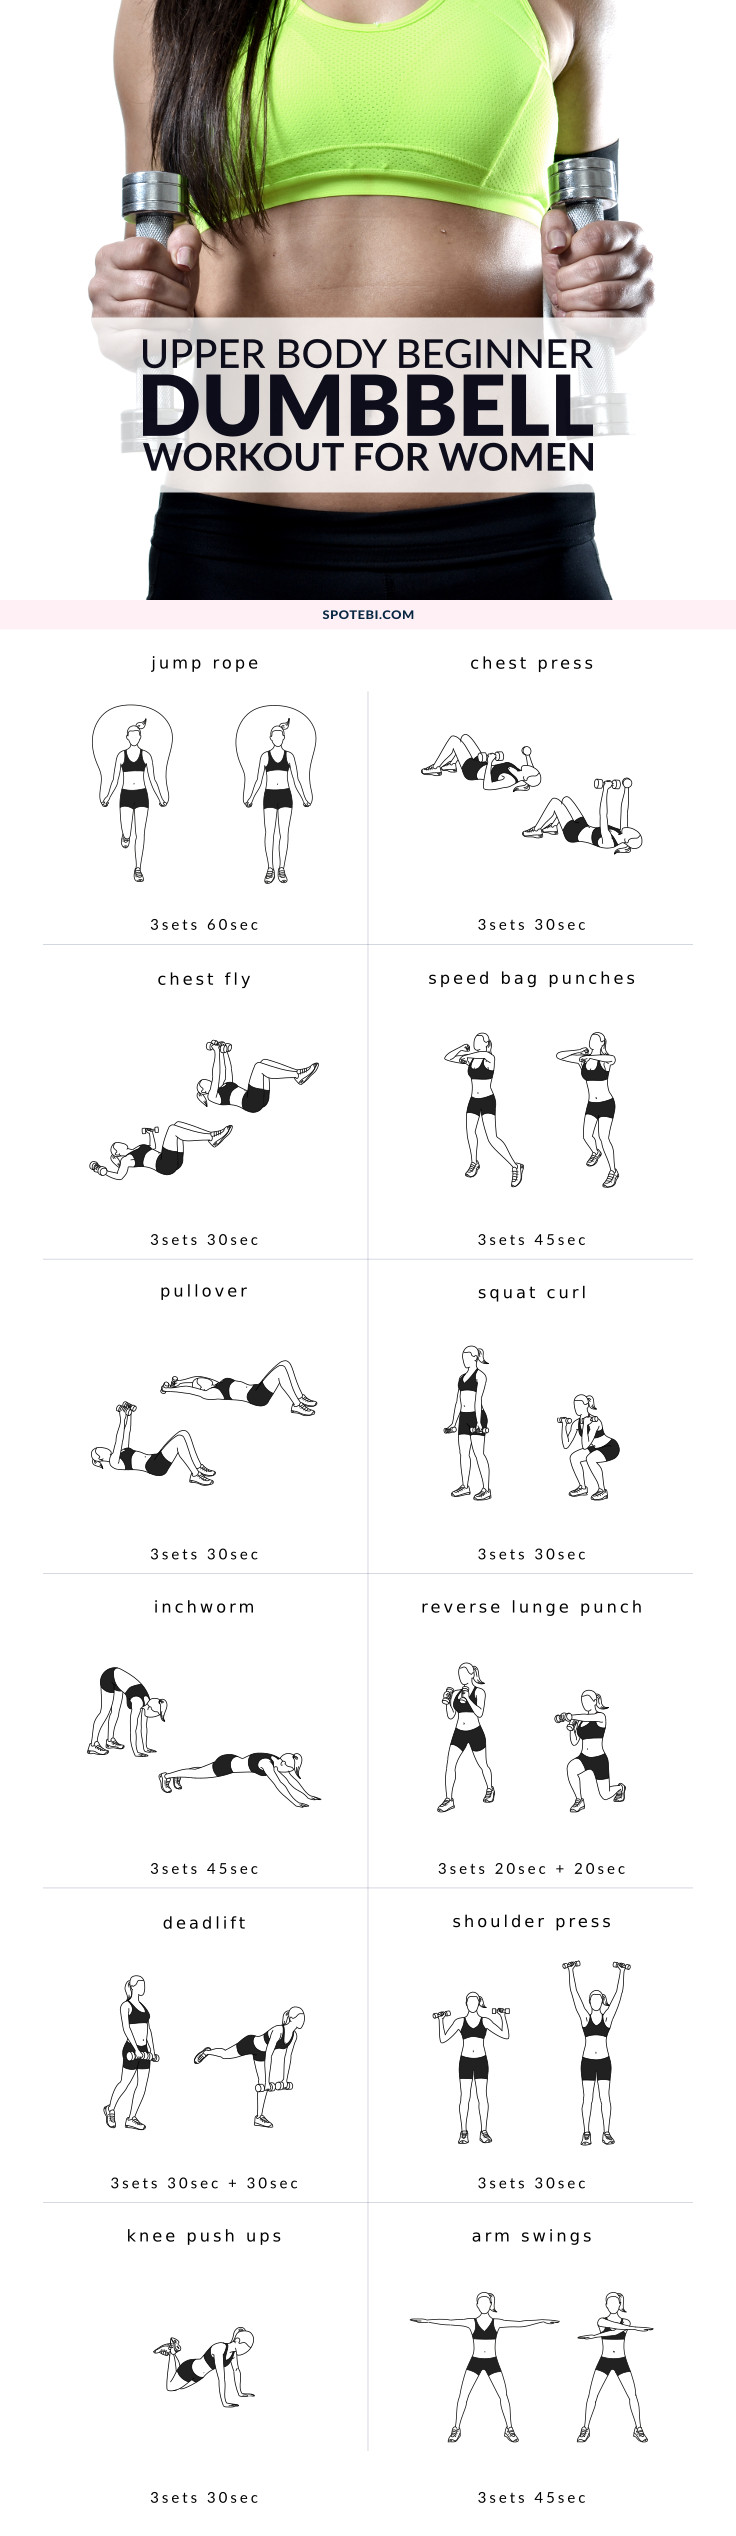 Strengthen Your Back And Lift Chest With This Upper Body Beginner Workout For Women